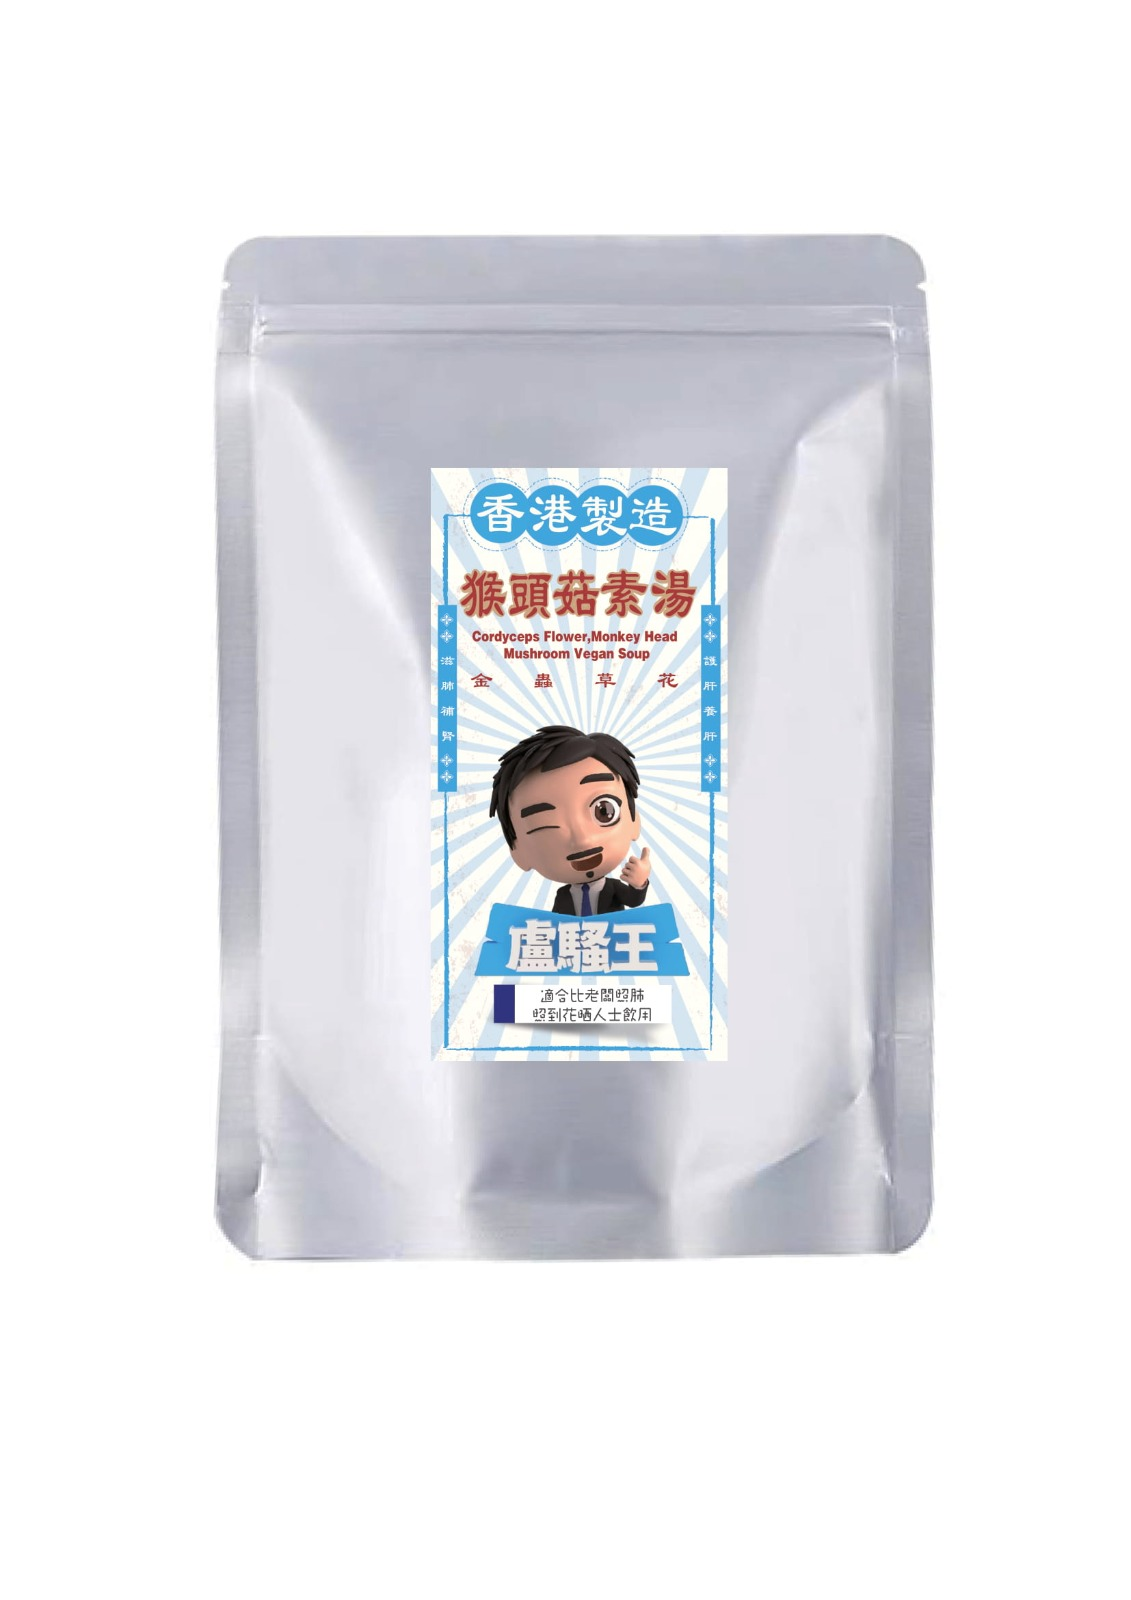 Losooking Series: Cordyceps Flower, Monkey Head Mushroom Vegan Soup (New Product)